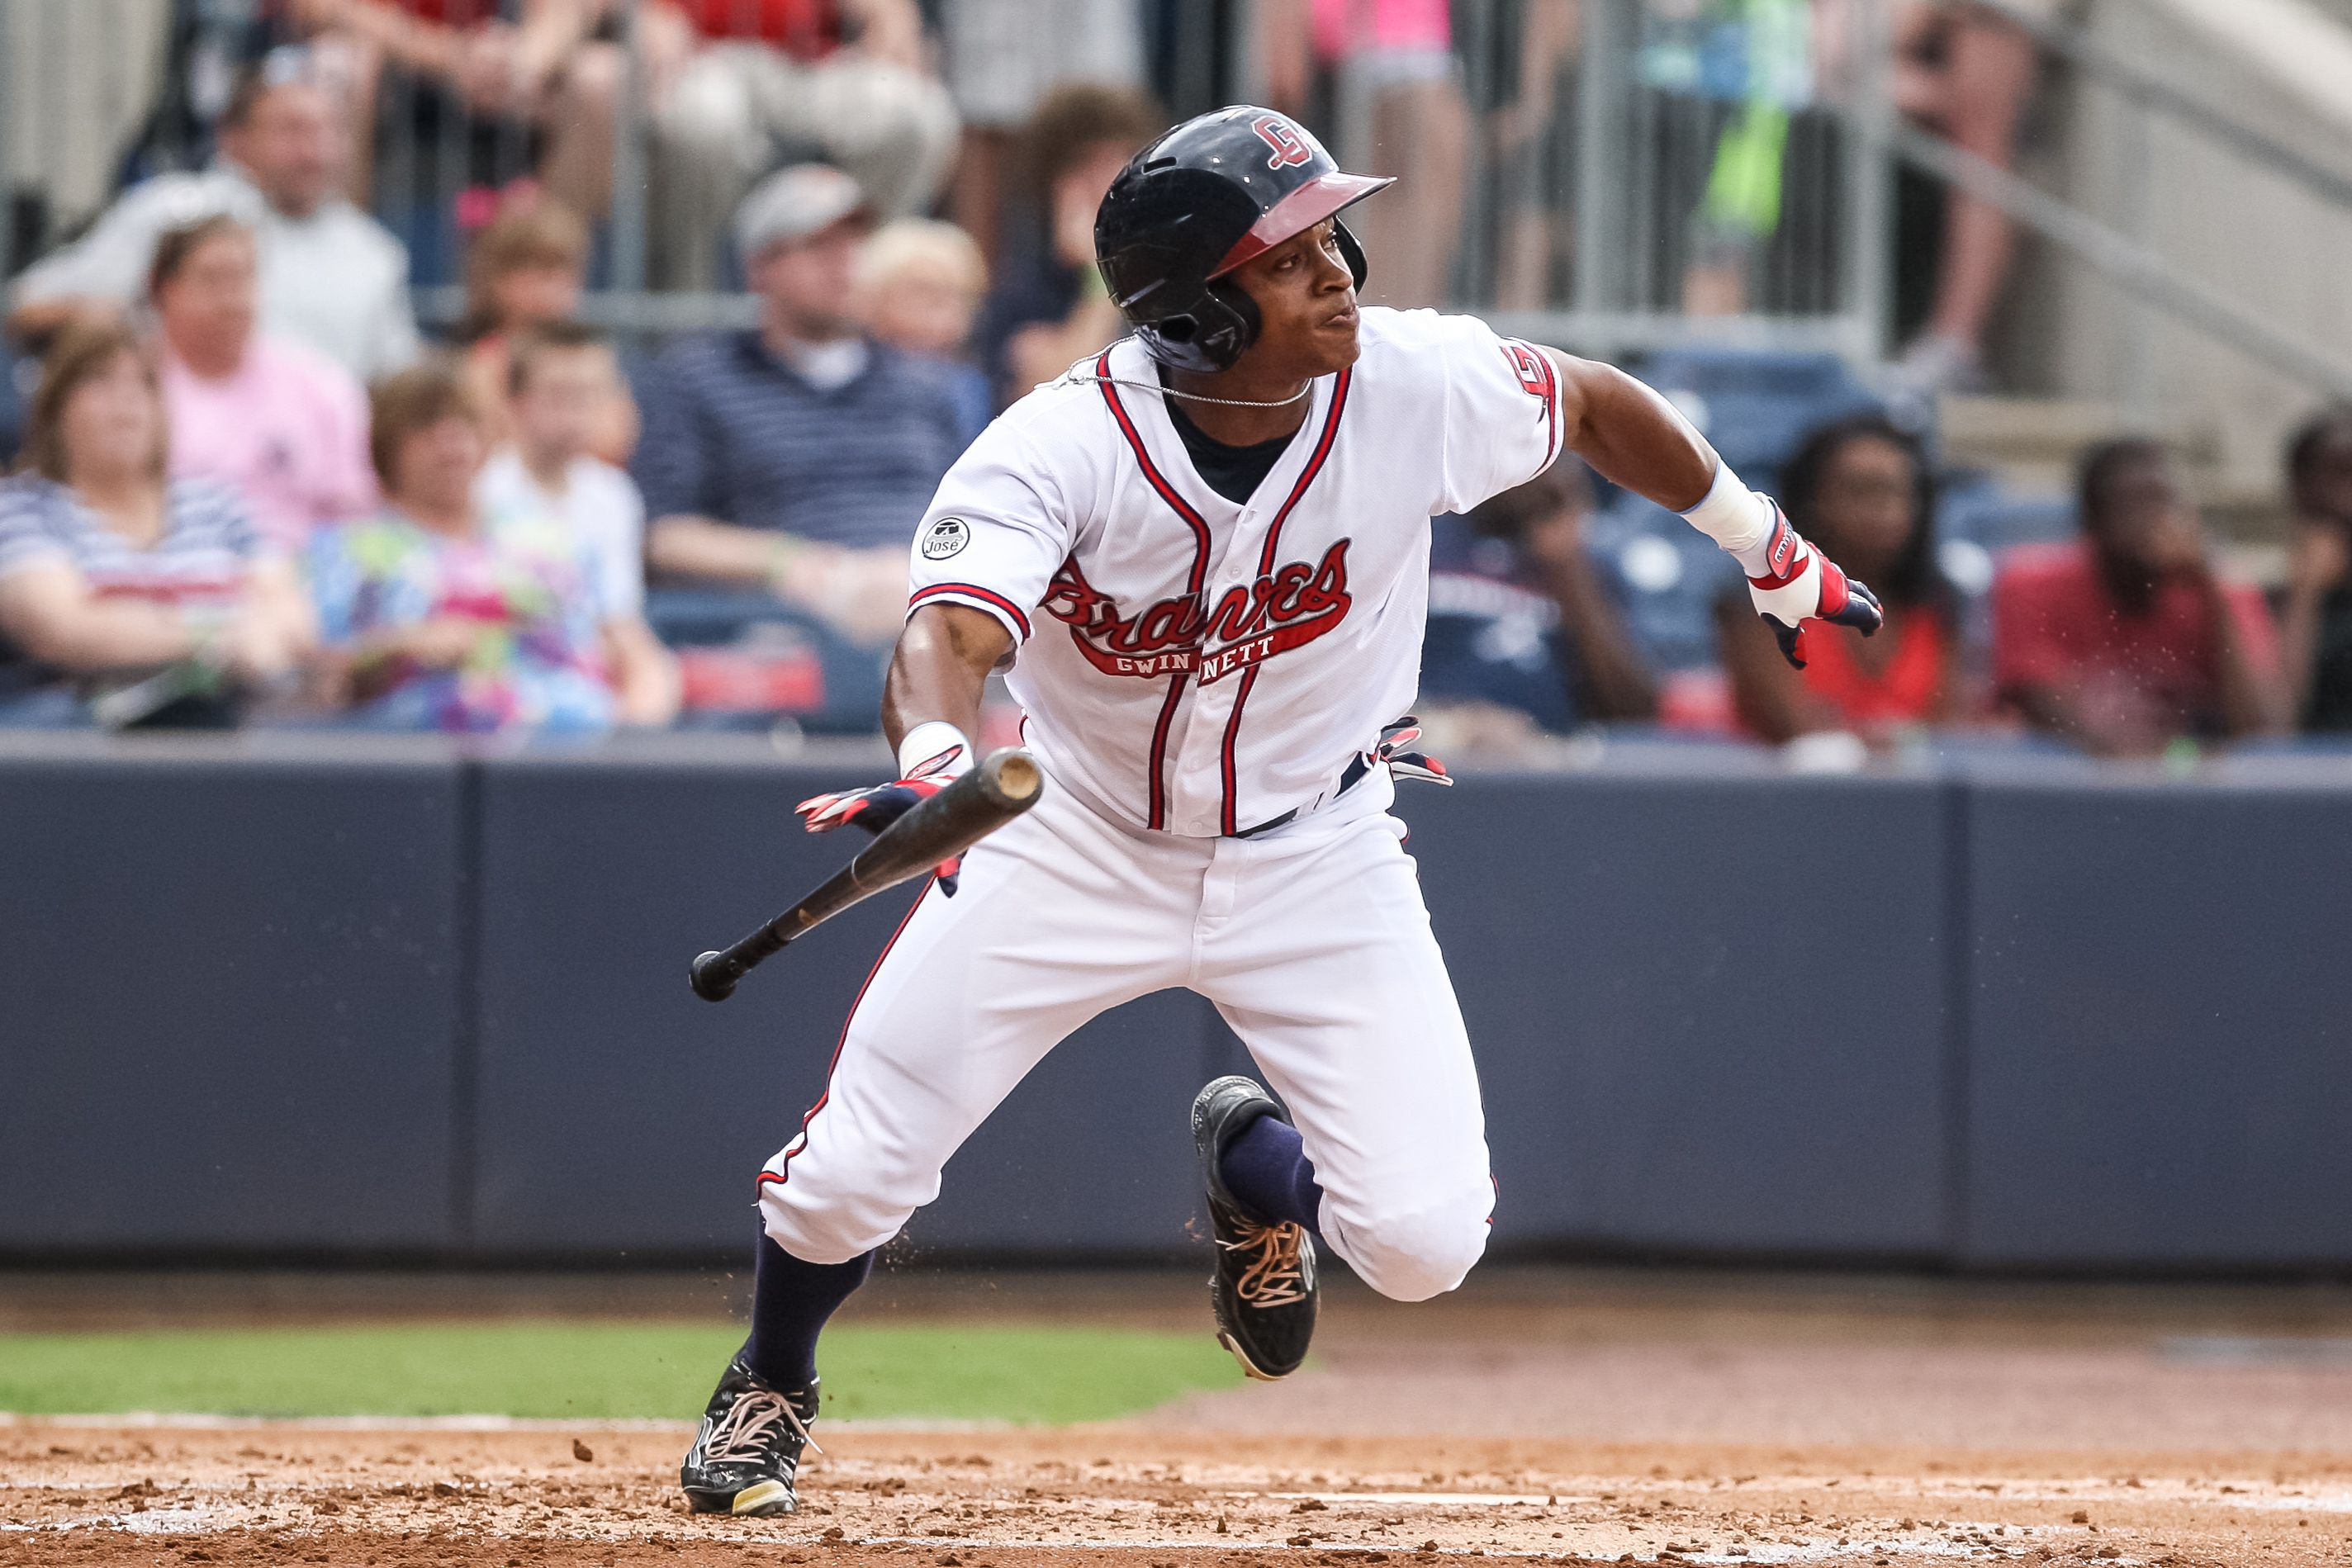 Gwinnett Braves Hd Wallpaper